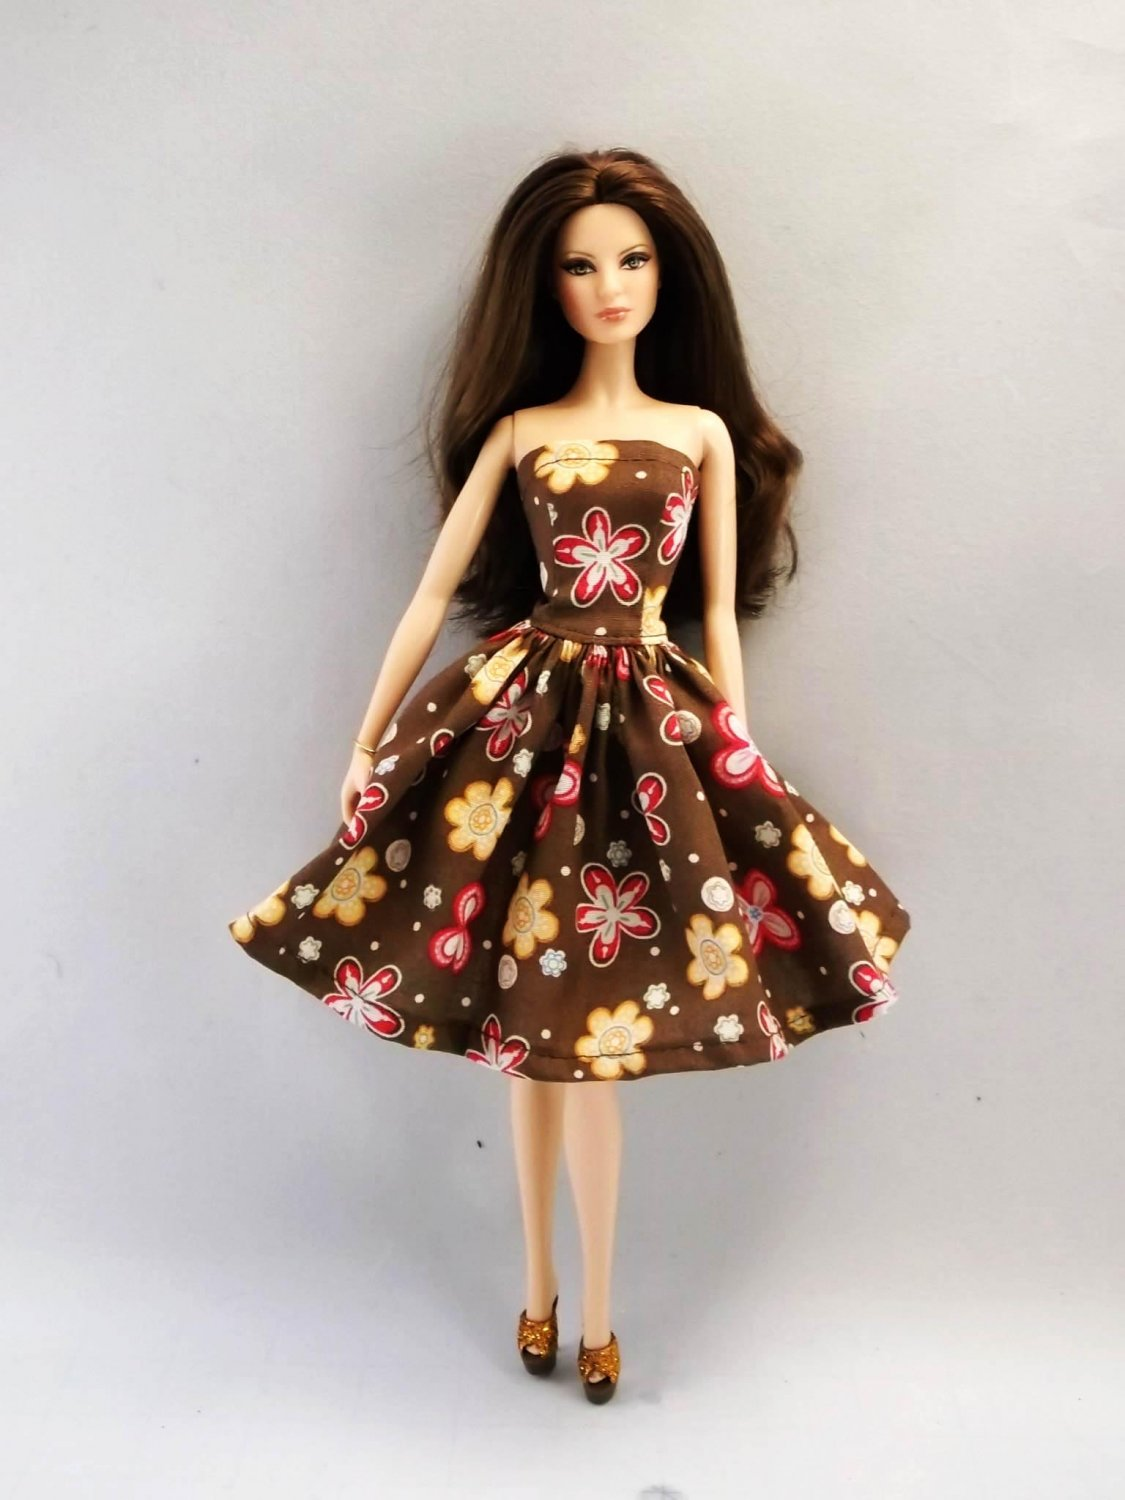 Barbie Clothes Strapless Barbie Dress  08